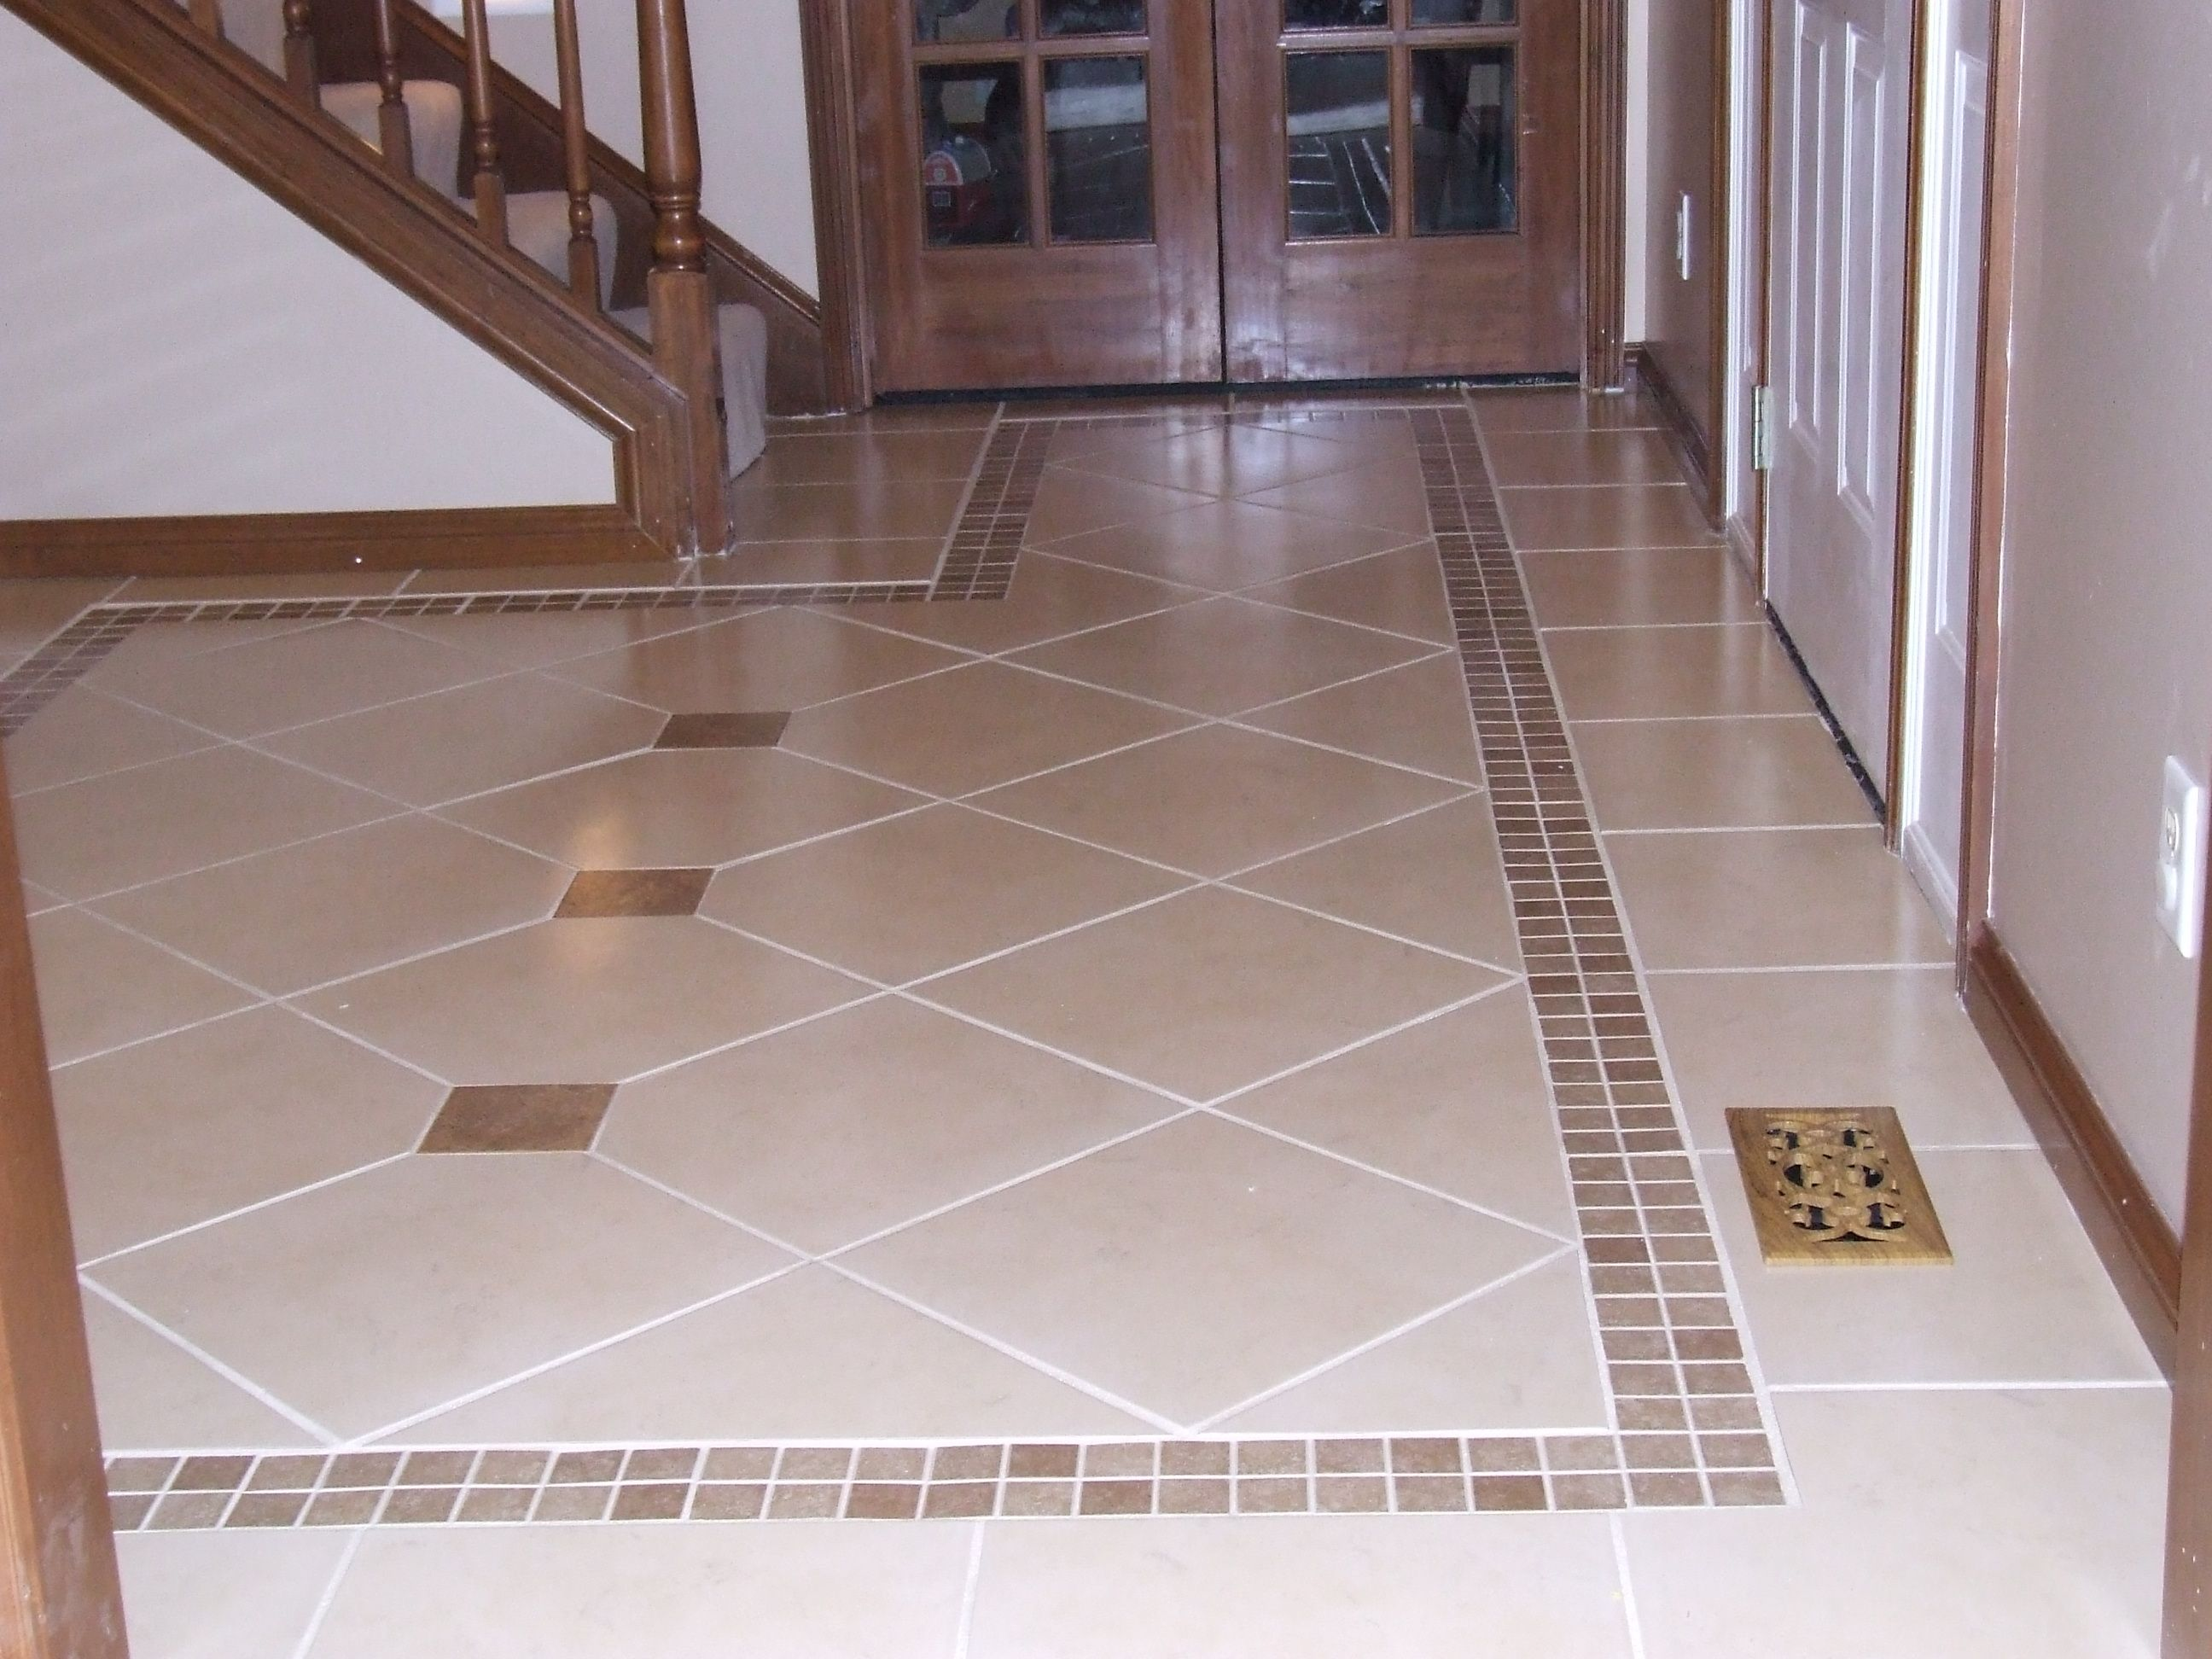 Kitchen Floor Tile Border Ideas Ceramic Tile Designs For Foyer Maybe